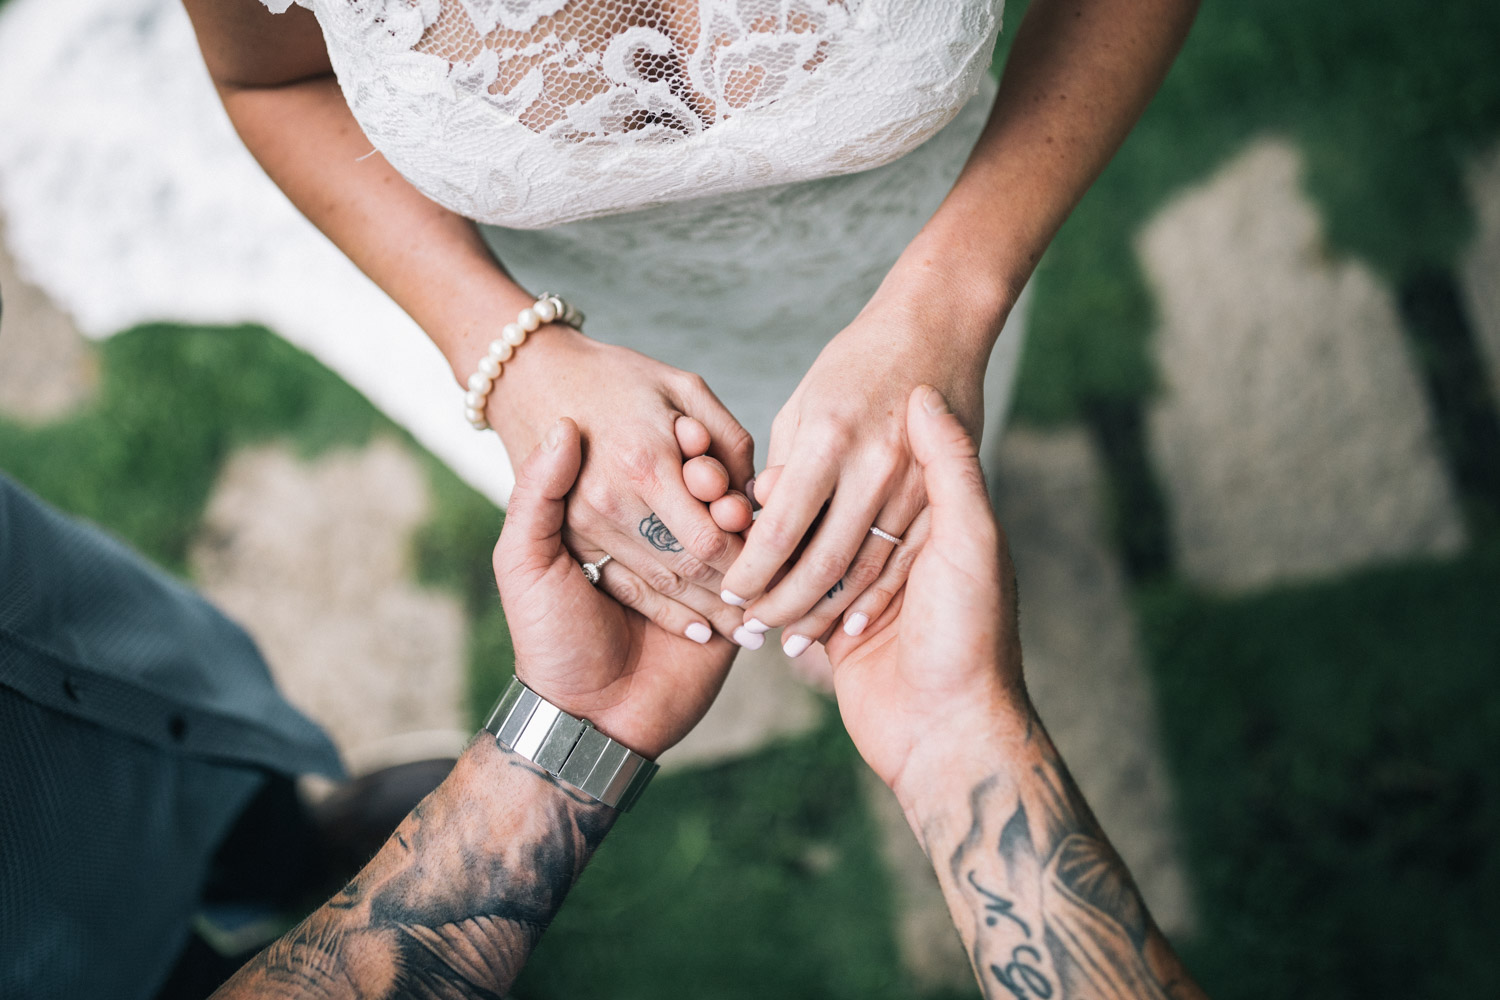 A tattooed husband and wife excchange wedding rings during a garden ceremony.